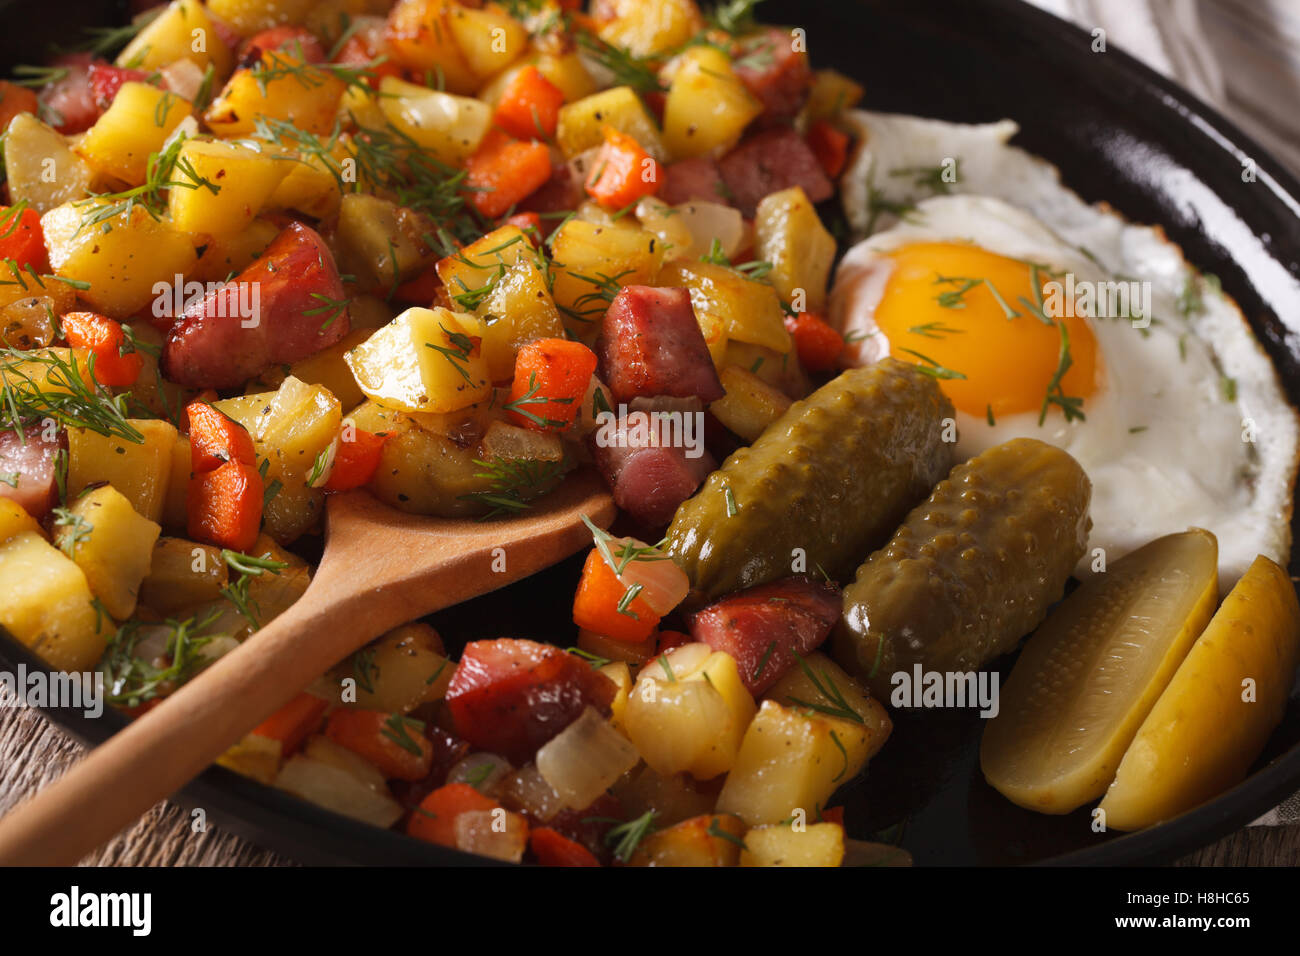 Scandinavian breakfast: pyttipanna with fried eggs and pickled cucumbers close-up on a plate. horizontal - Stock Image